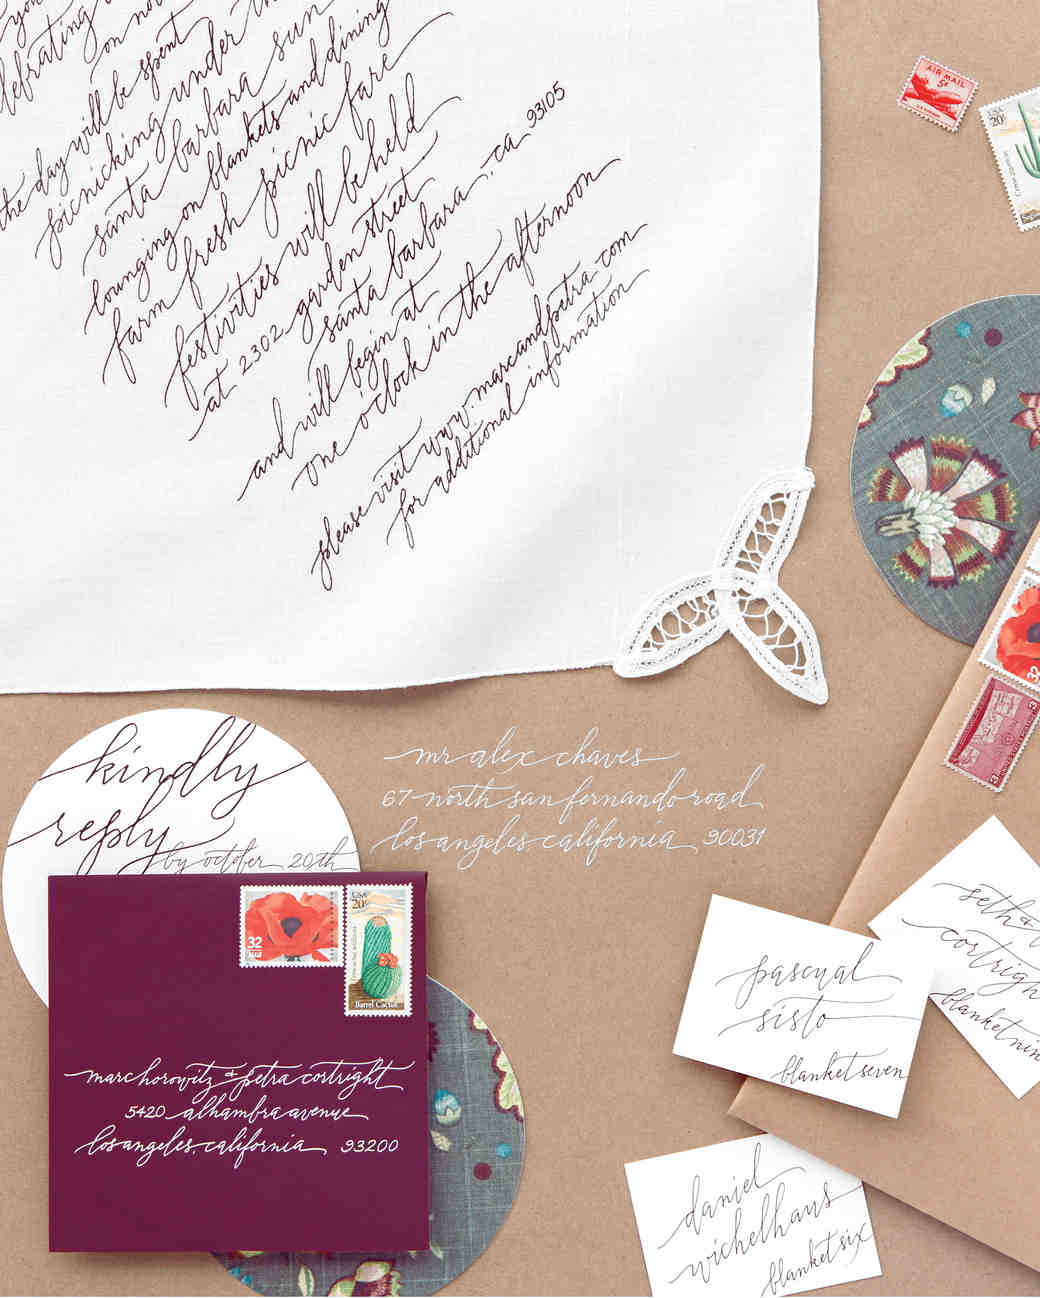 petra-marc-wedding-invite-full-frame-stylist-crop-s111812.jpg